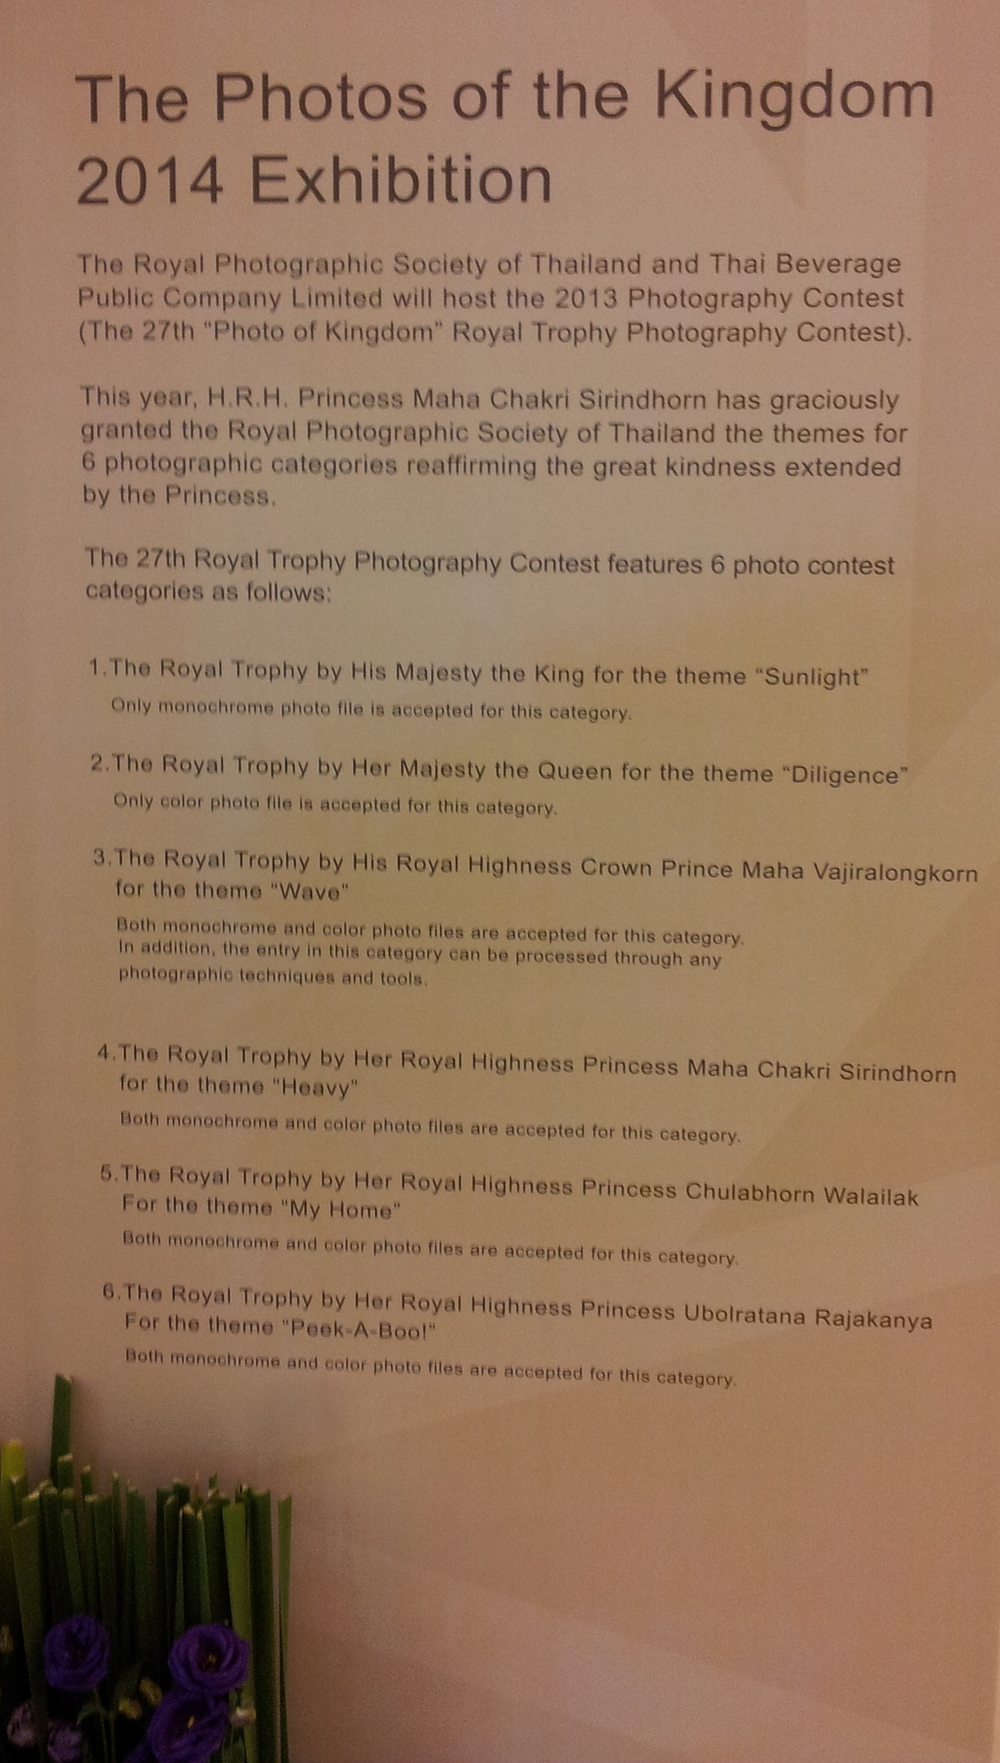 At the Siam Paragon; a gigantic mall located in the heart of Bangkok is host to a photographic exhibition courtesy of The Royal Photographic Society of Thailand.